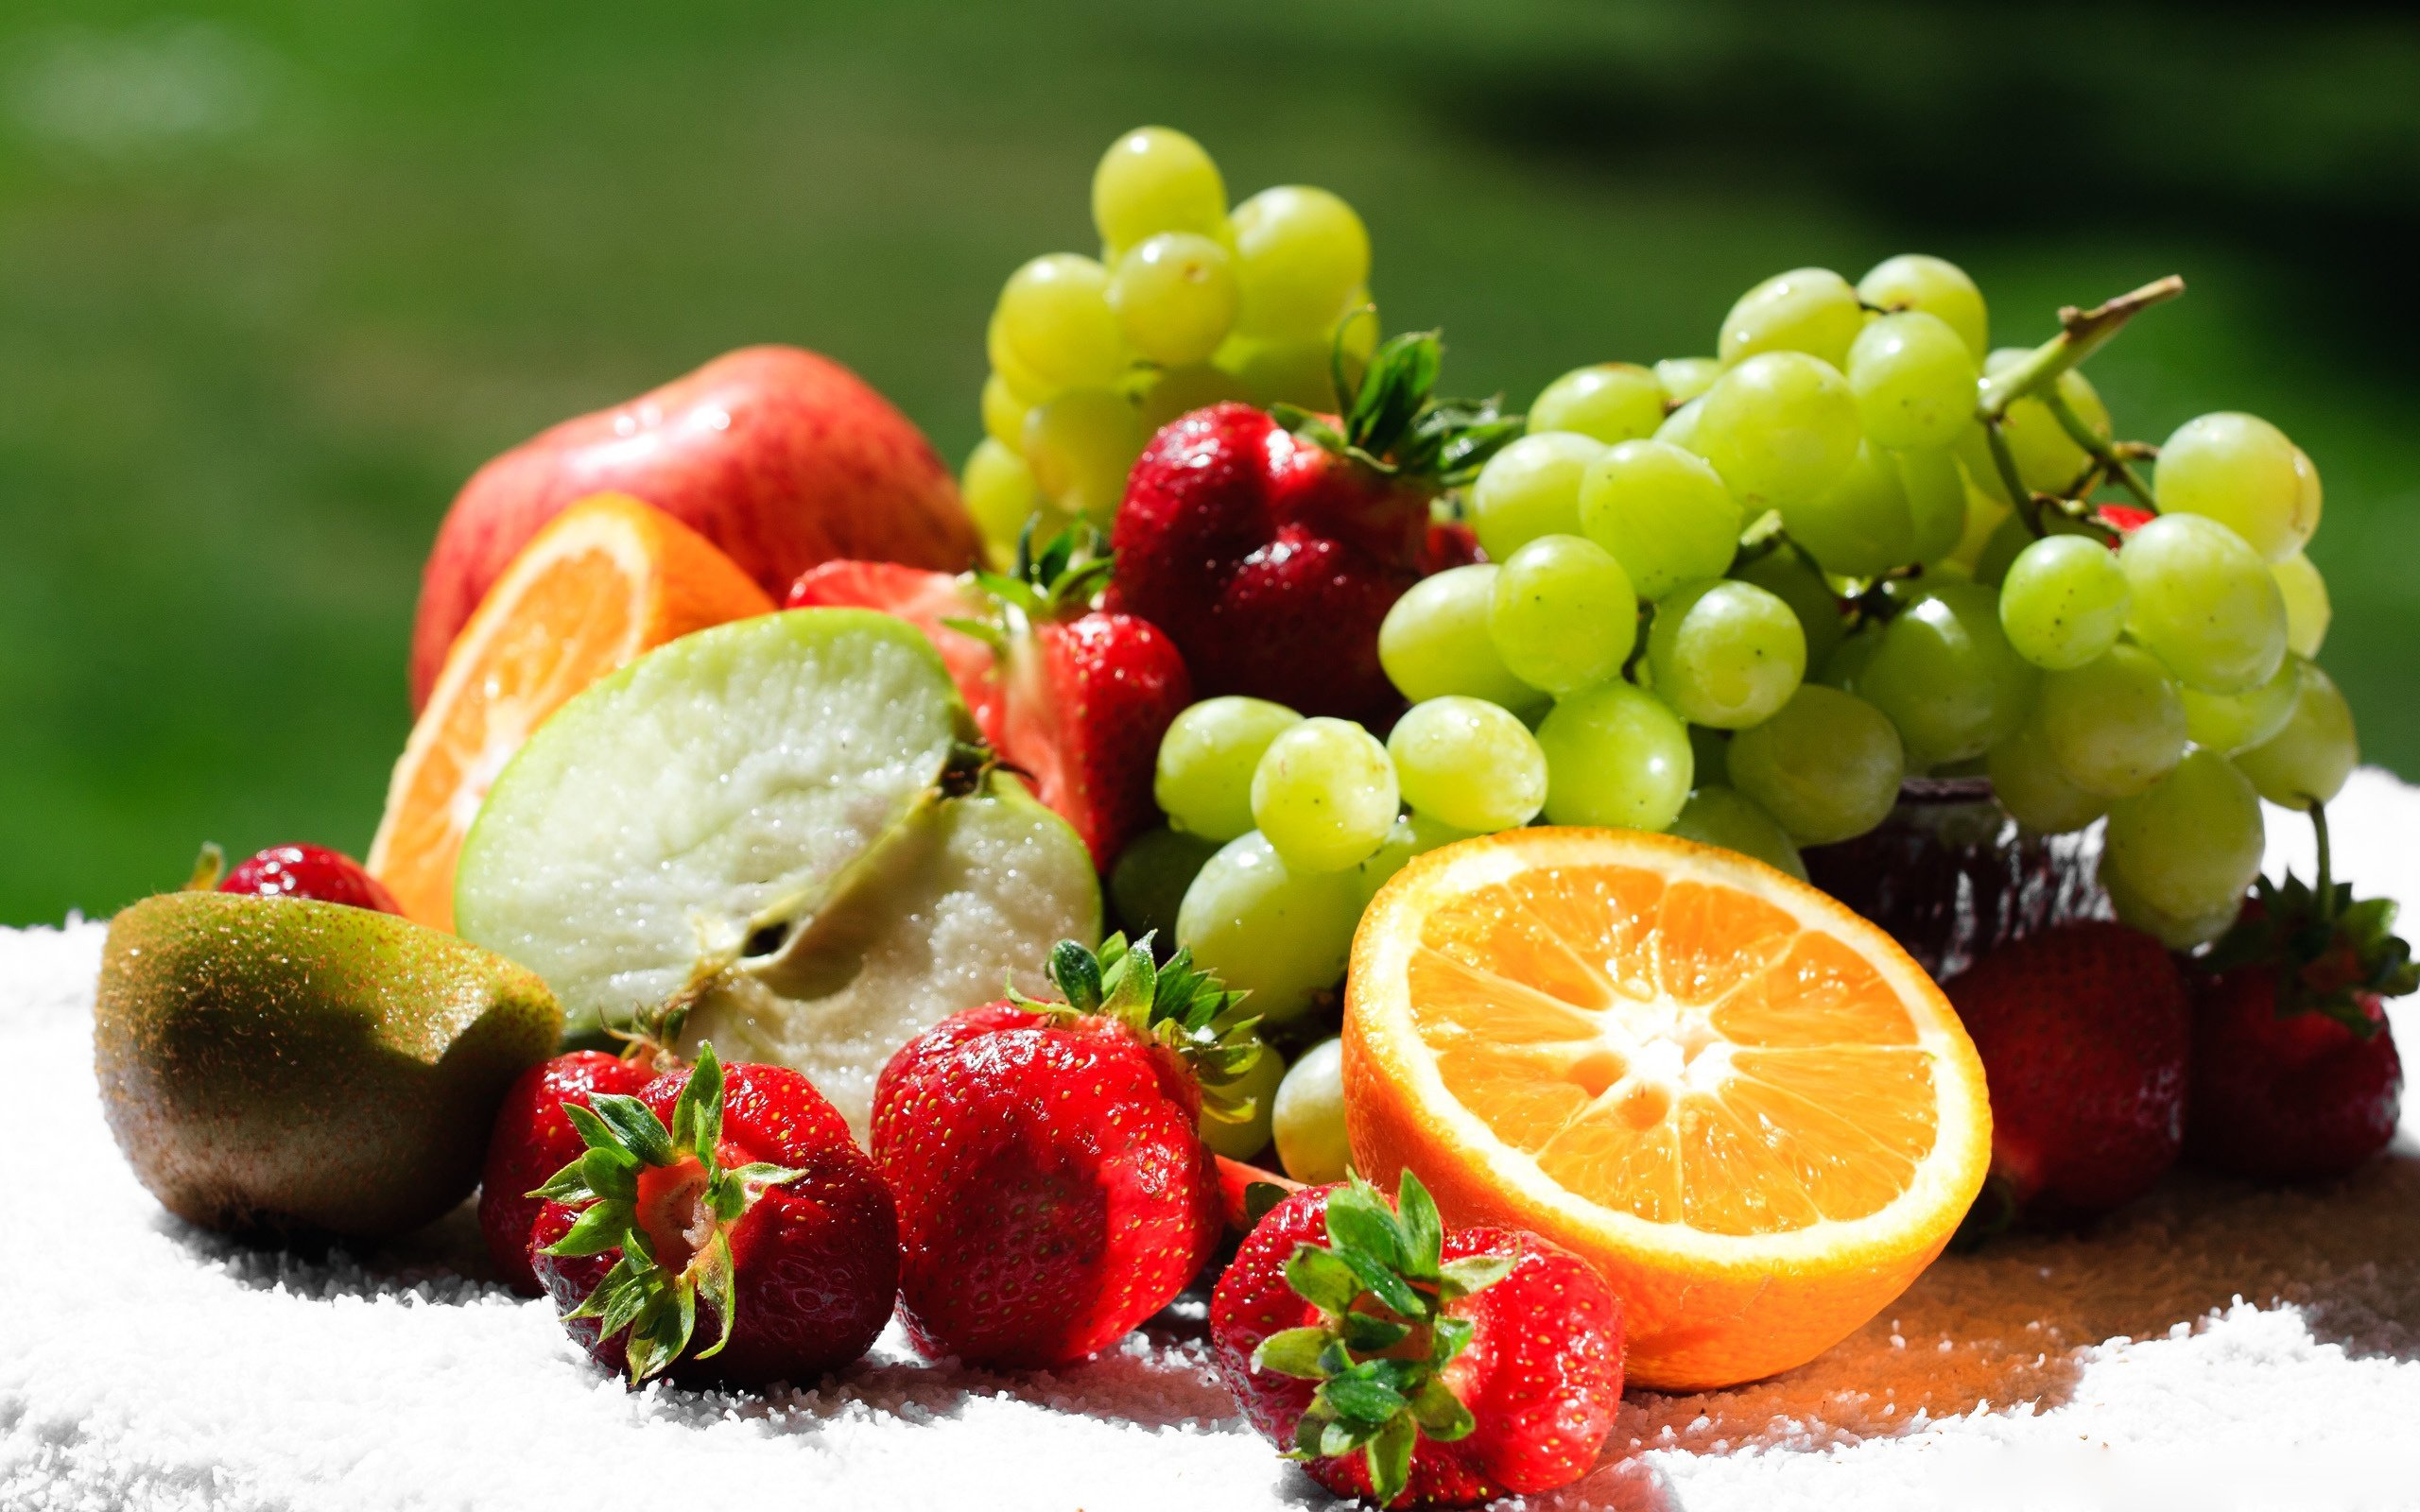 Mixed Fresh Fruit Wallpaper   9869 2560x1600